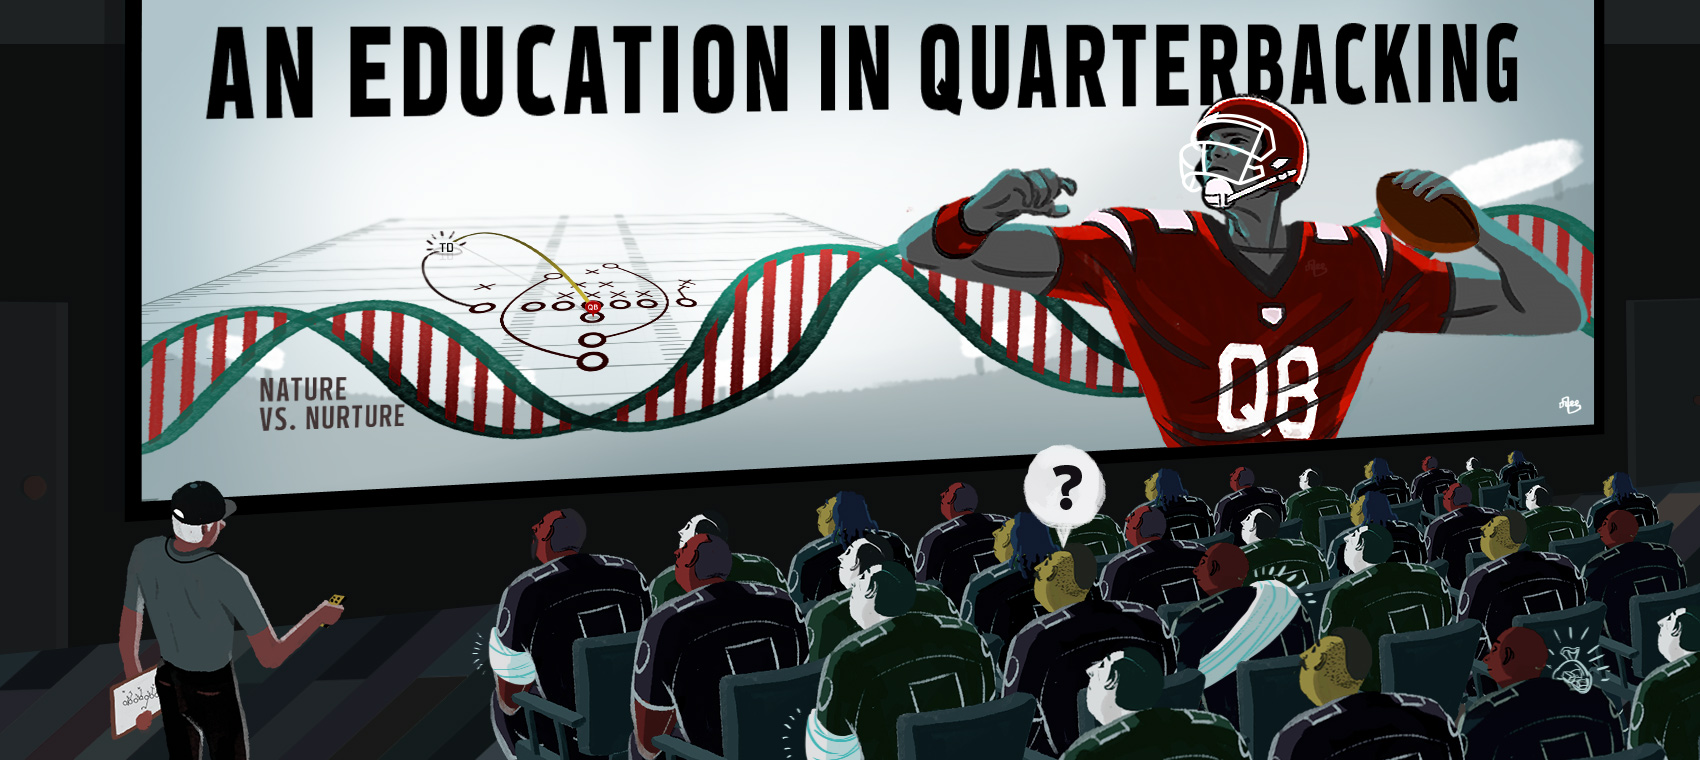 An Education in Quarterbacking